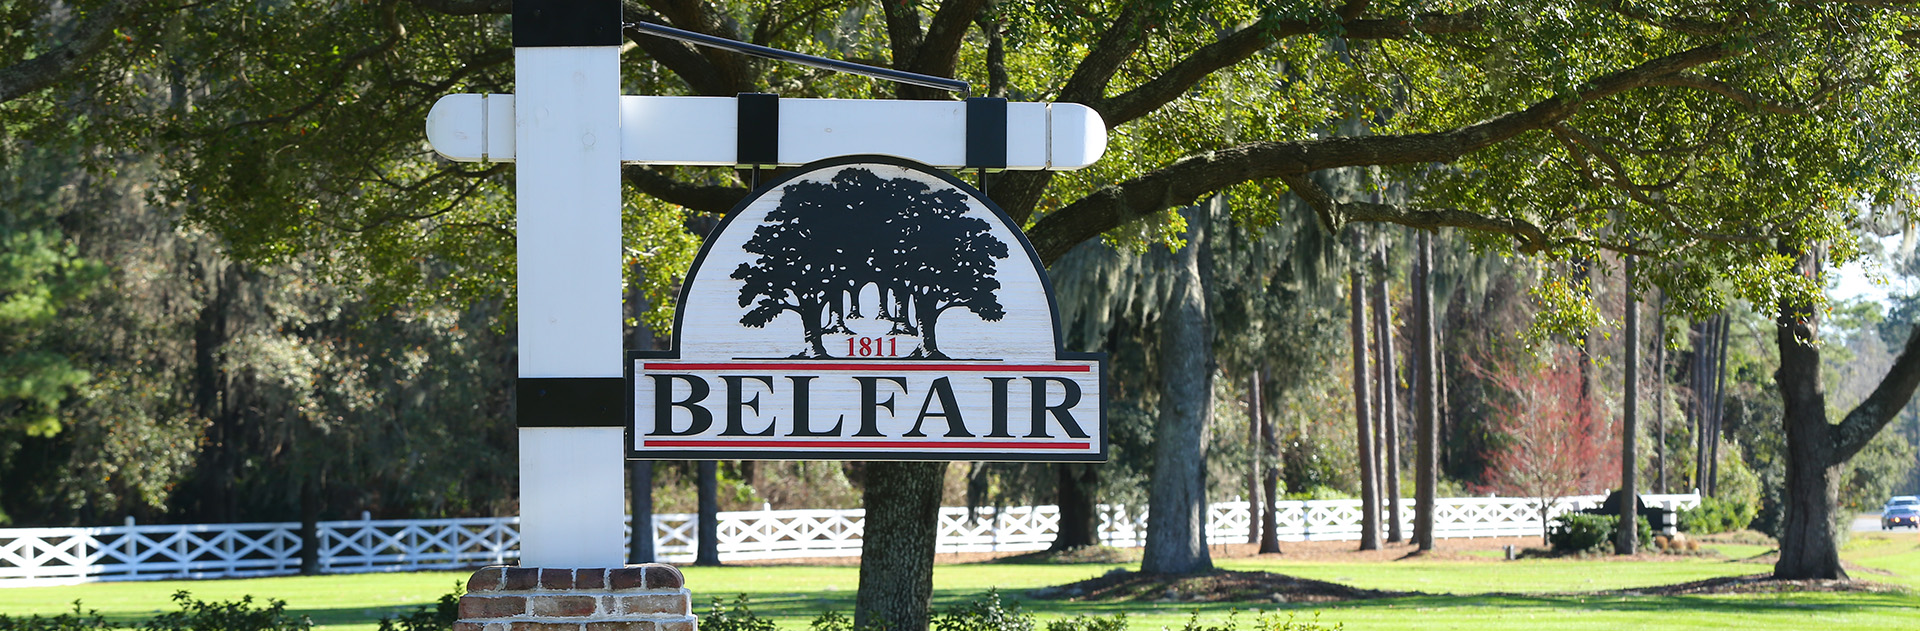 Belfair plantation front sign